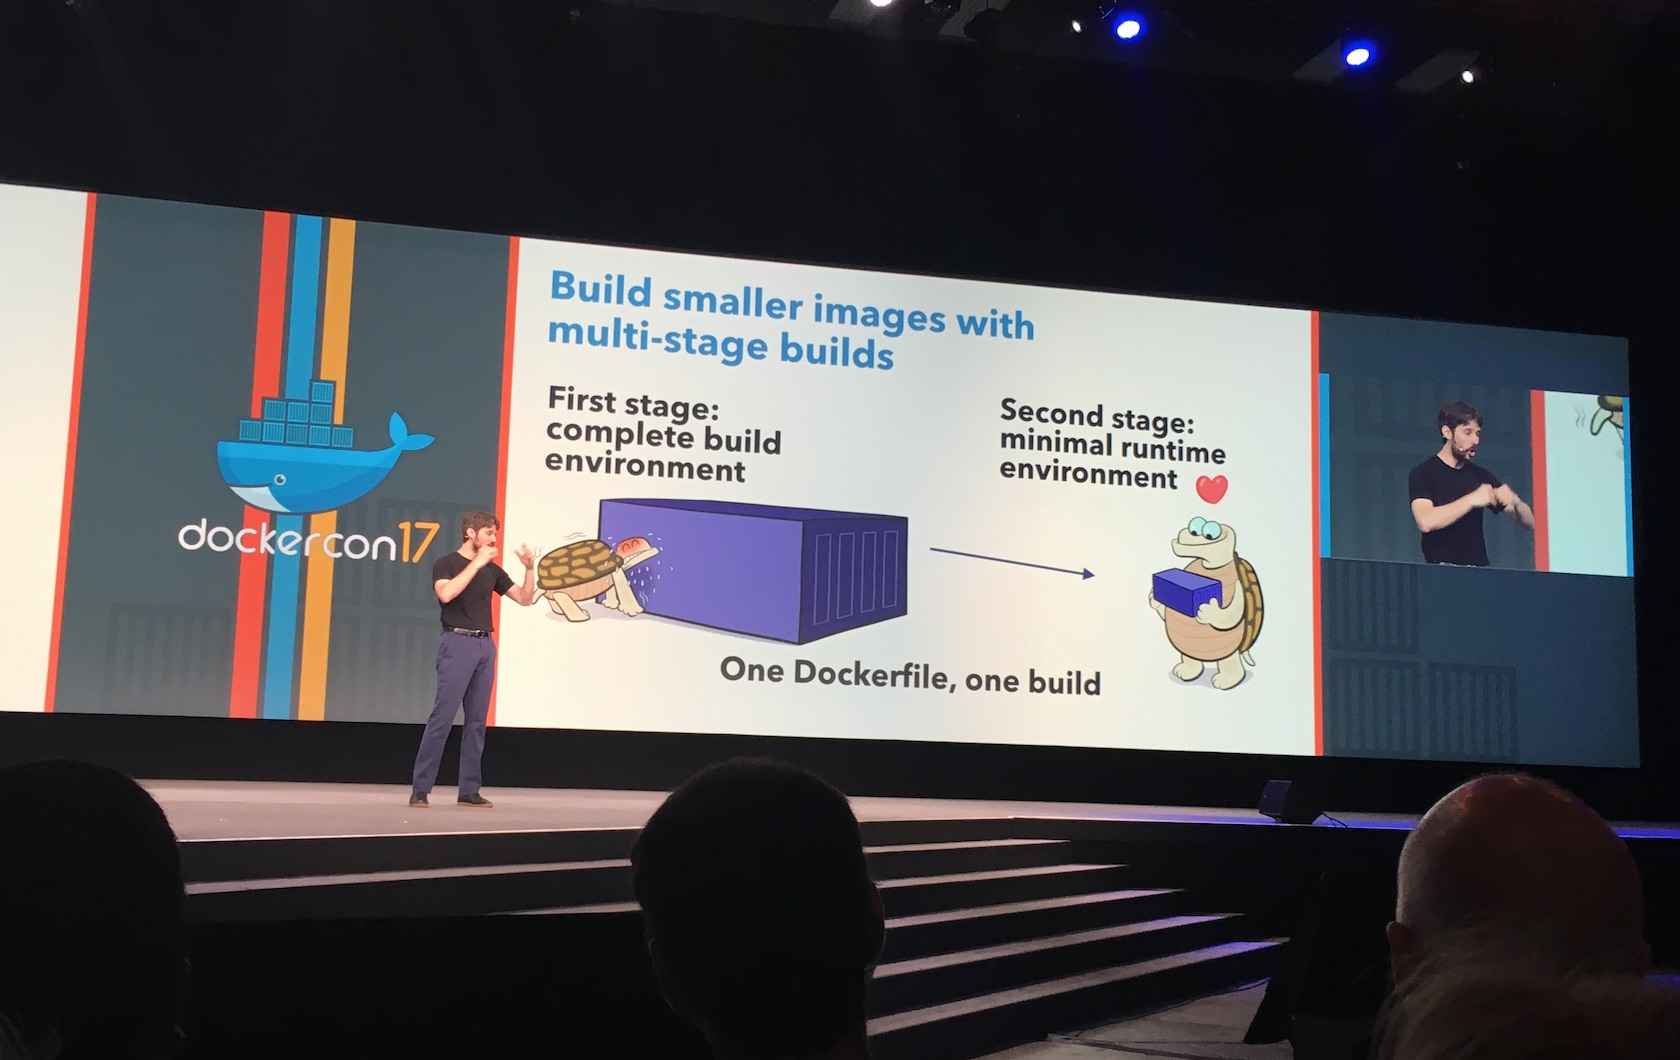 announcement at DockerCon about multi-stage builds